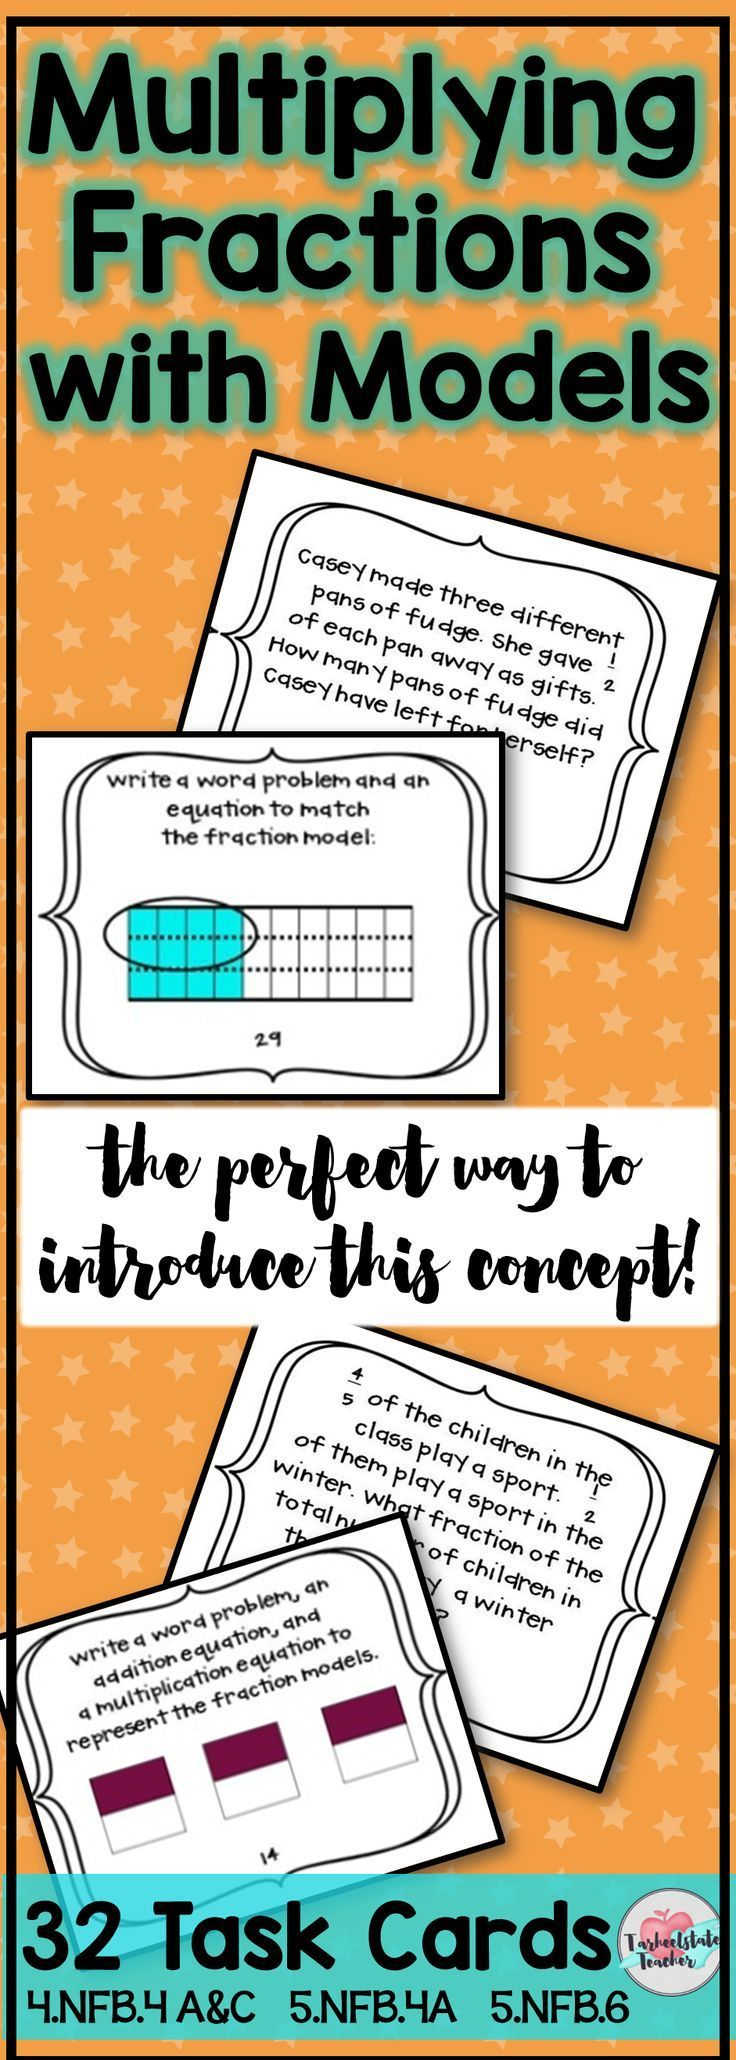 Multiply Fractions With Fraction Word Problems And Fraction Models Task  Cards